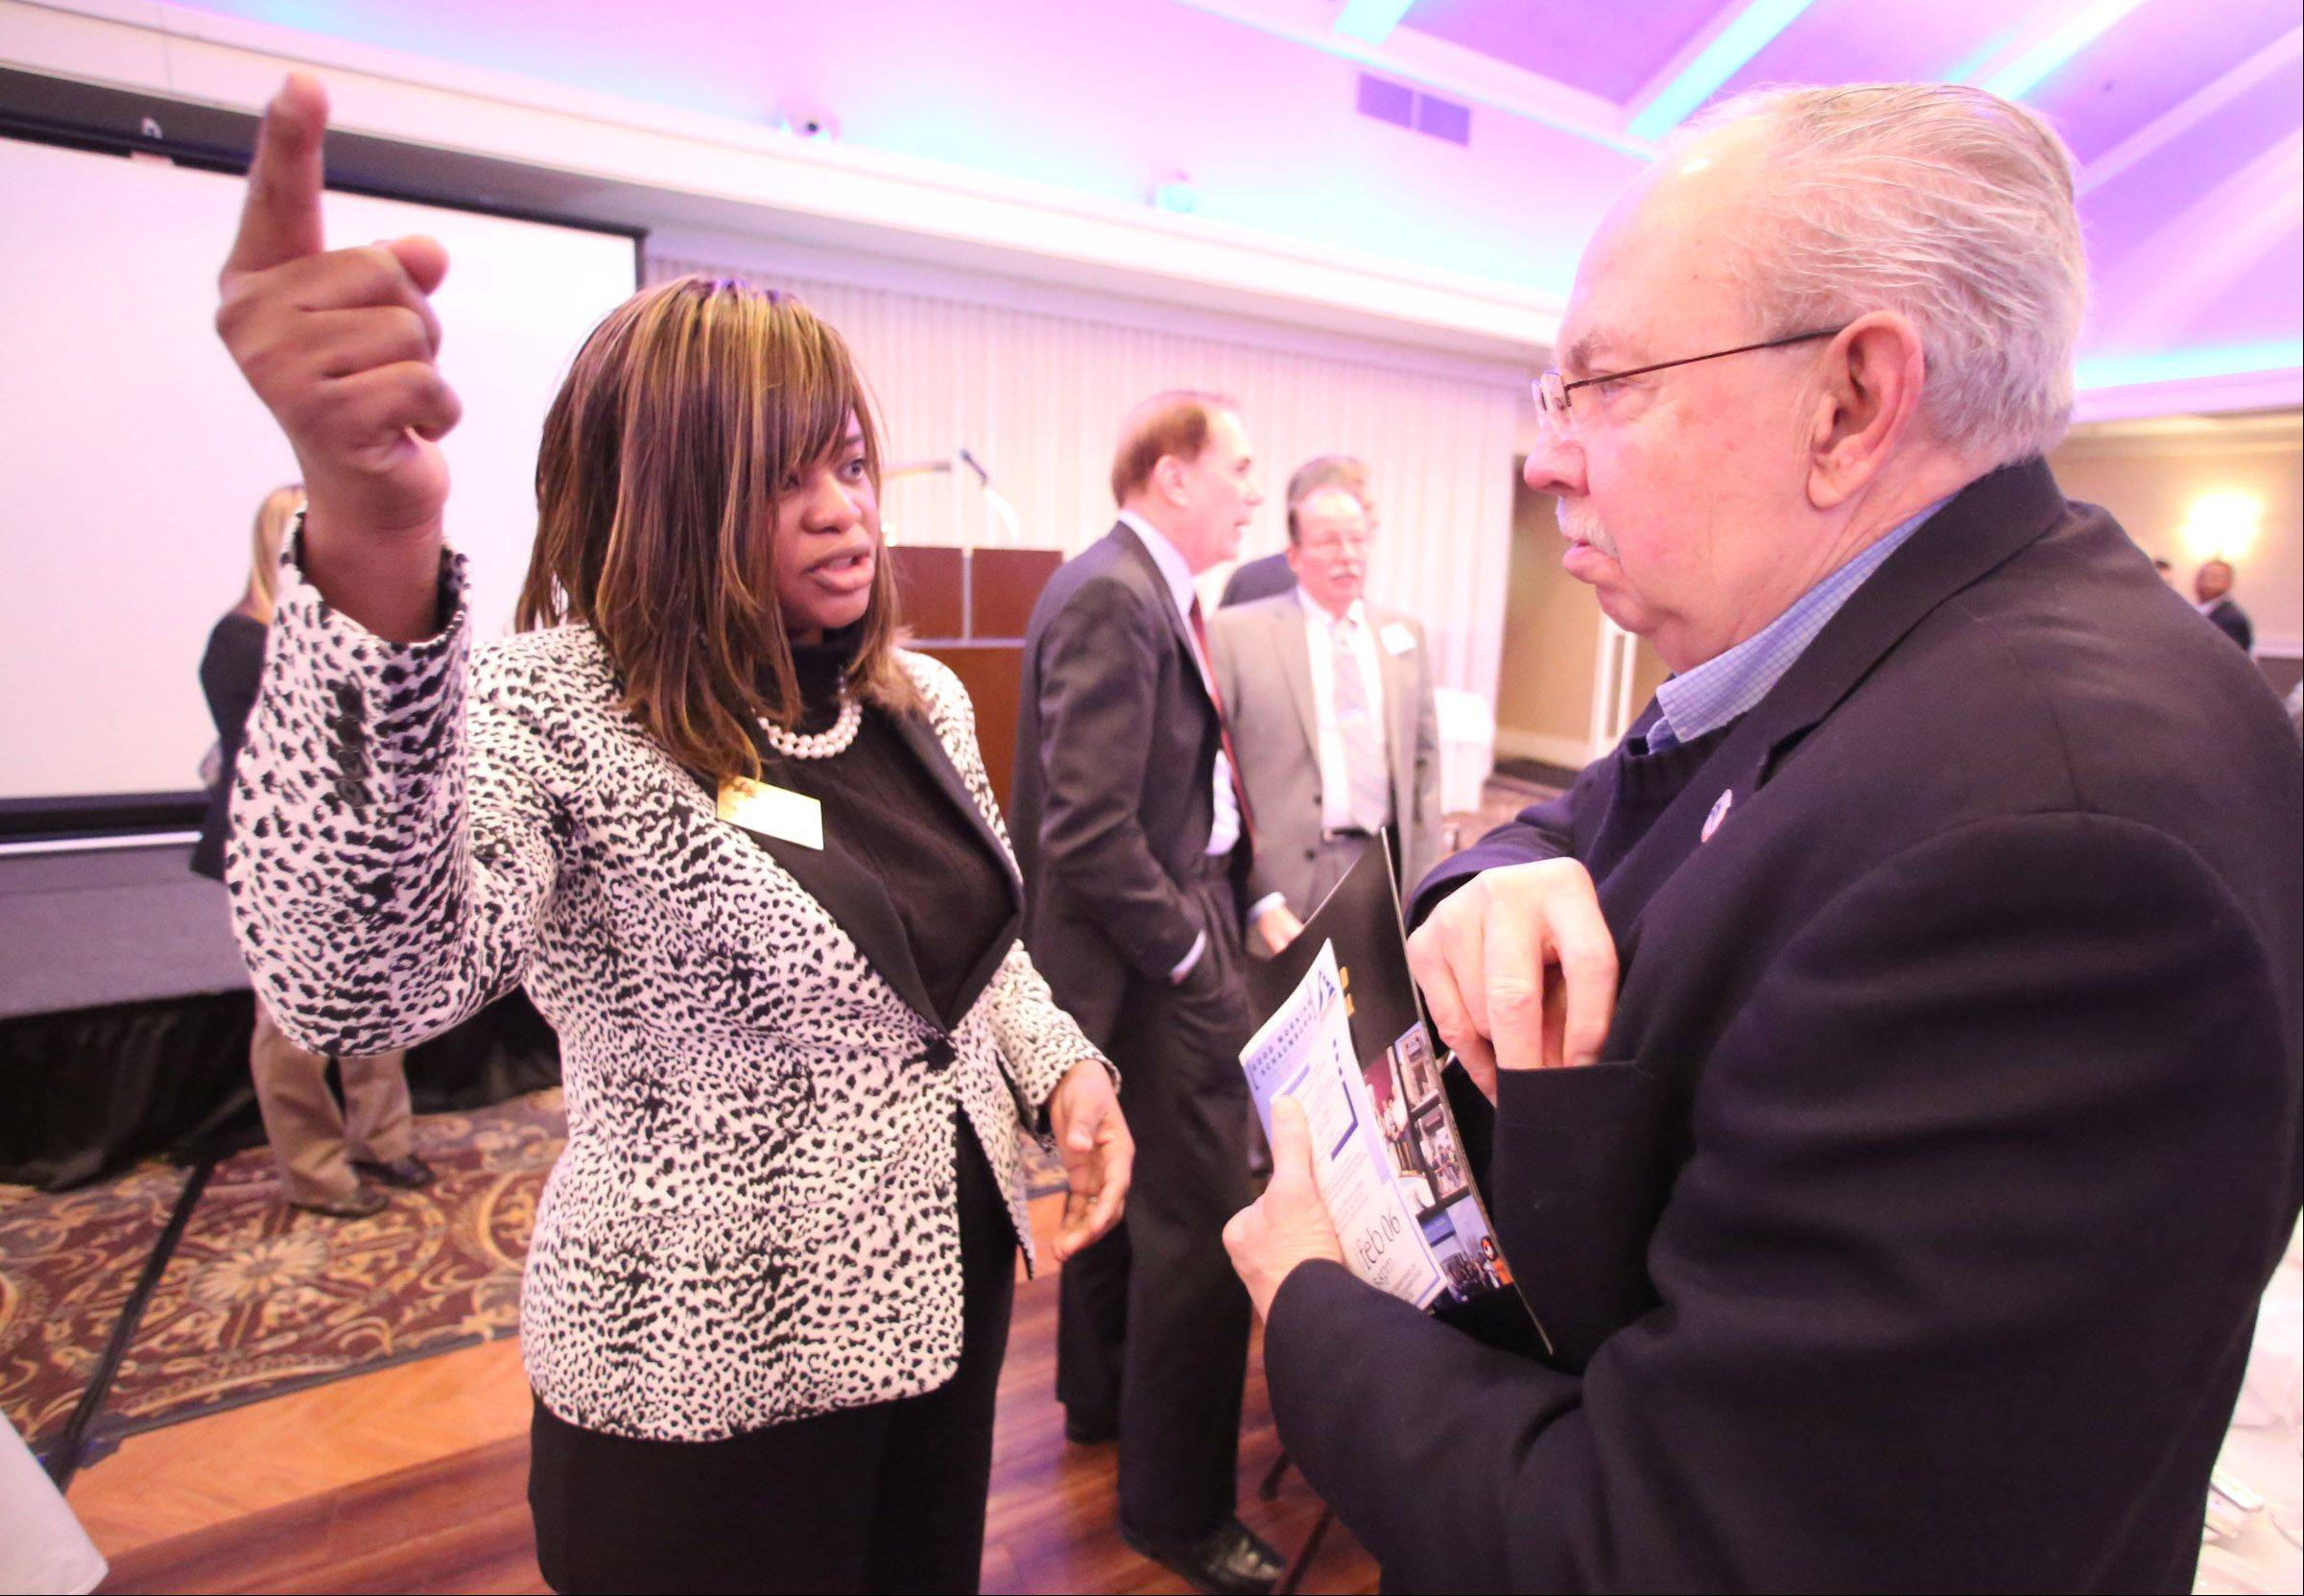 Schaumburg Mayor Al Larson speaks with Ris Orhorha, president of Center for Health Services, after he delivered his annual state-of-the-village address and preview of the year ahead at the Schaumburg Business Association's monthly breakfast meeting Tuesday.